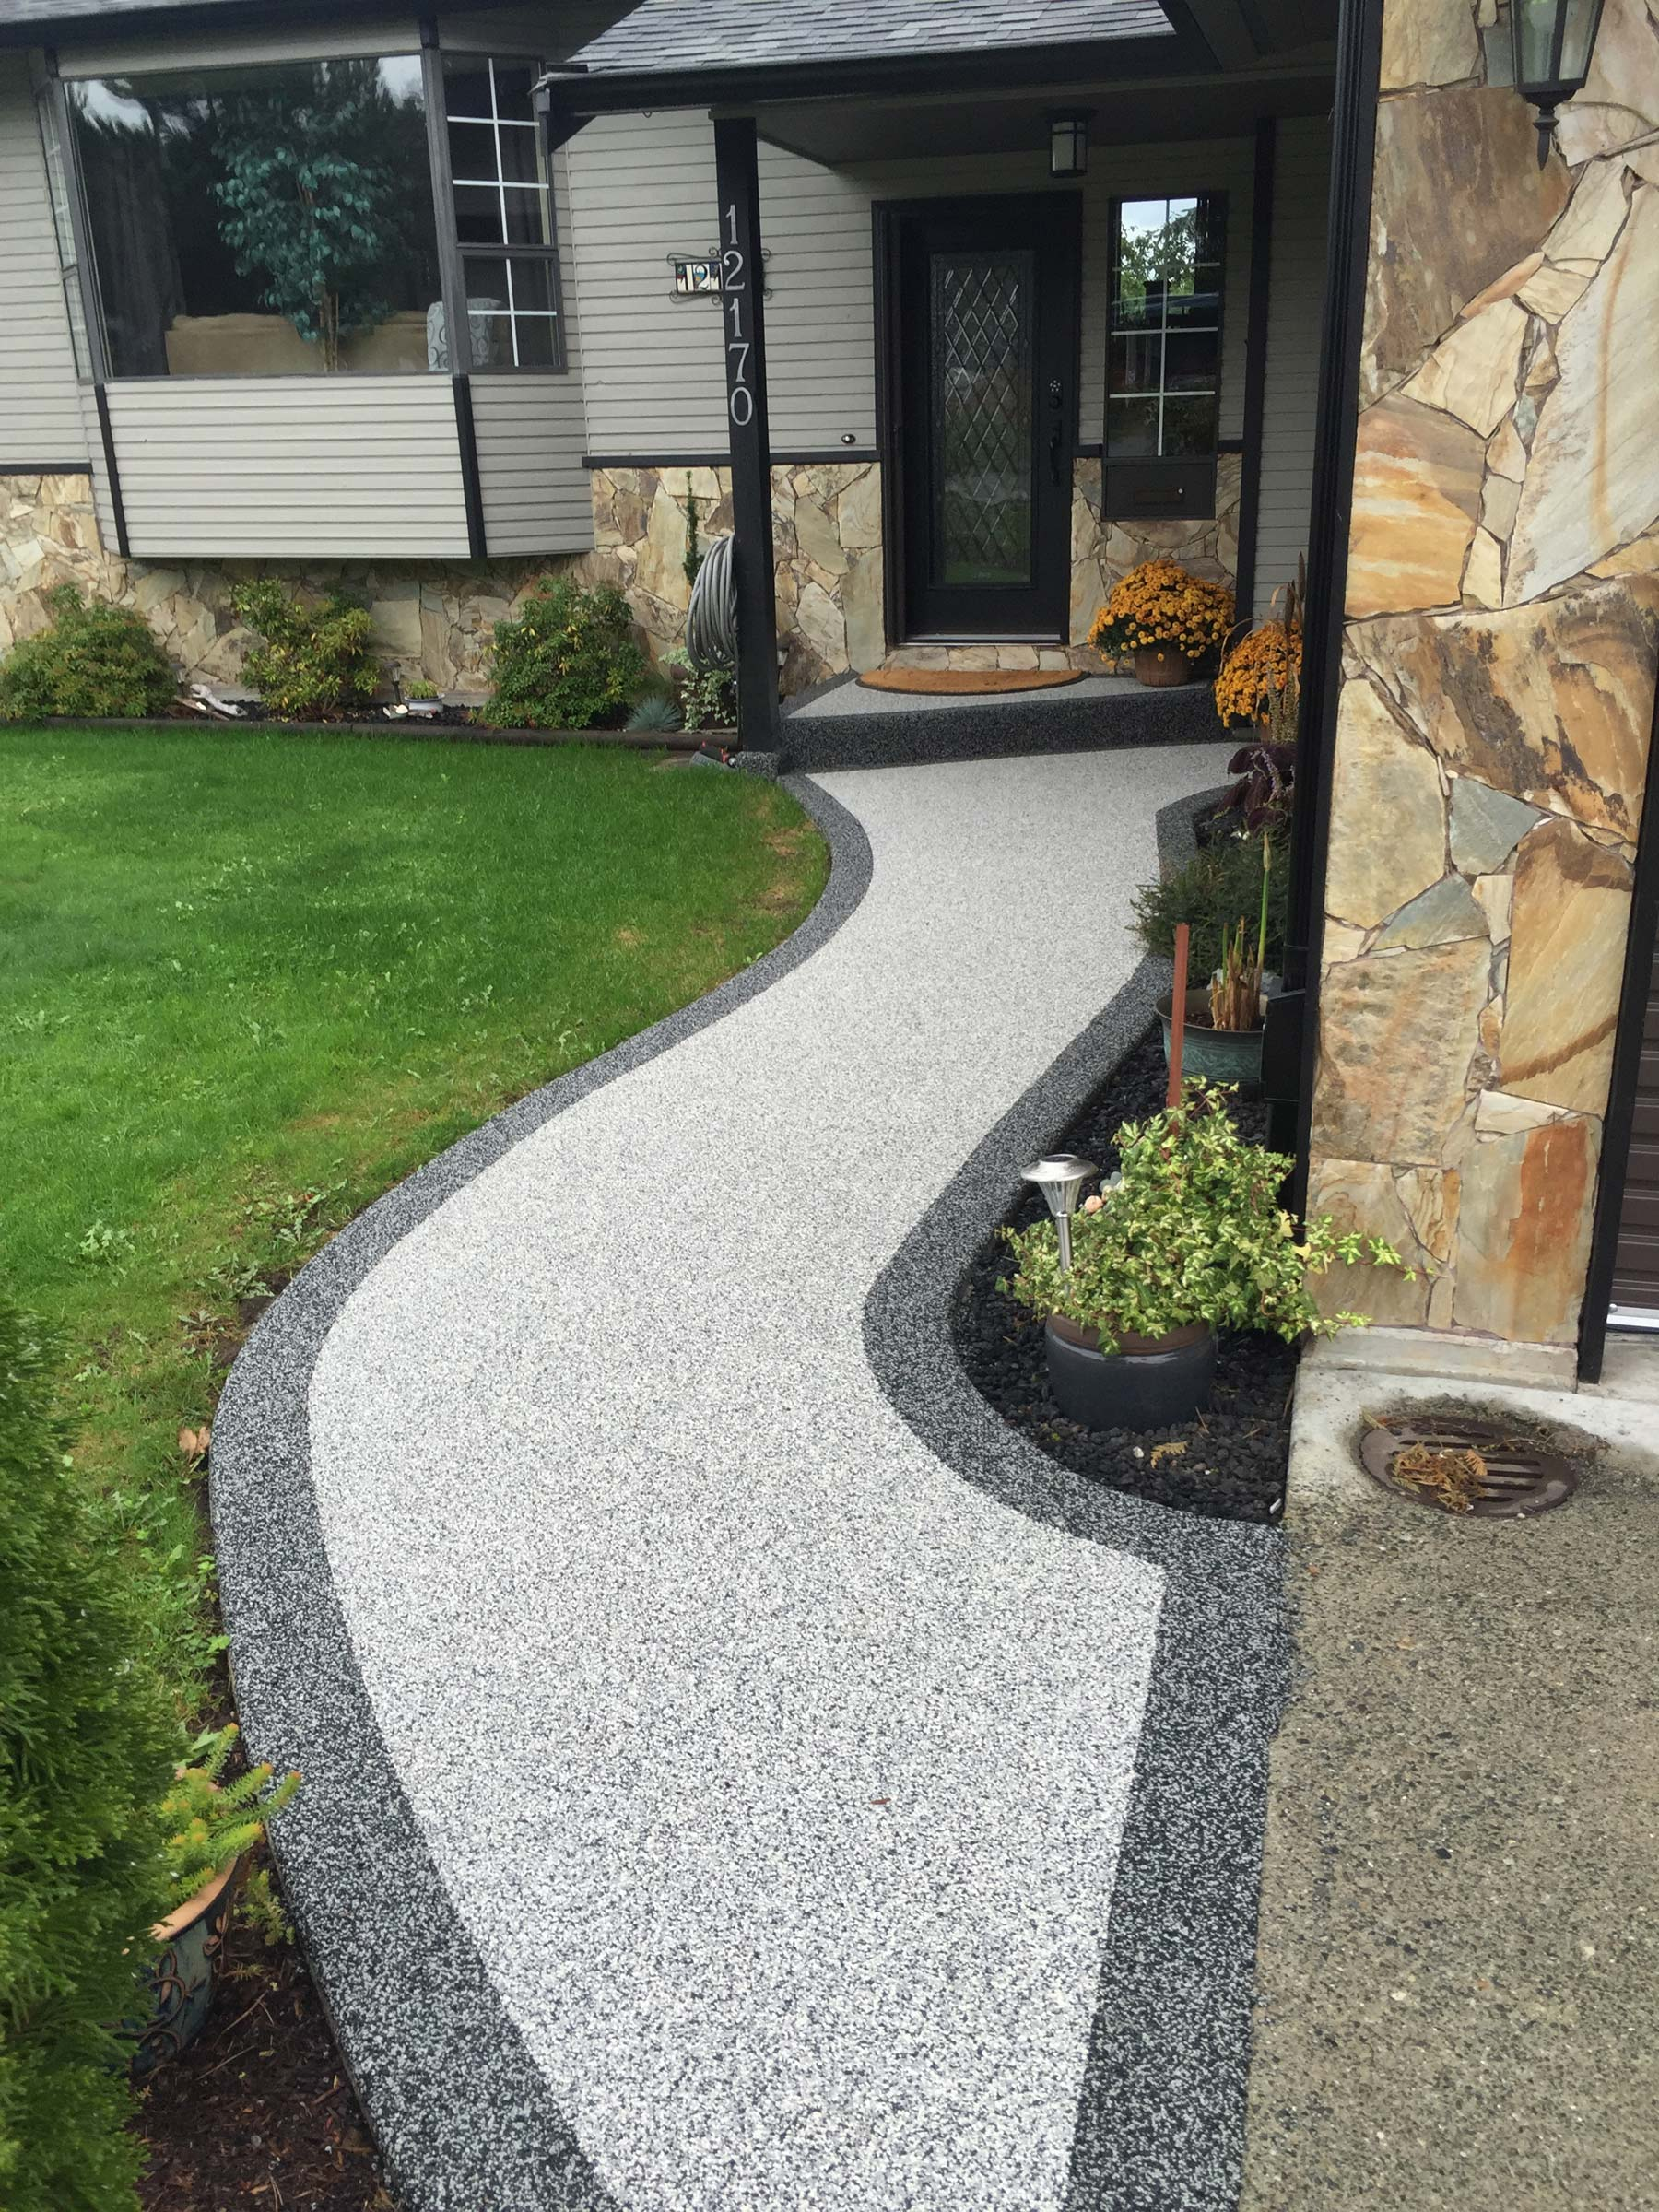 BC rubber paving company offers rubber driveway paving, rubber flooring, and driveway resurfacing